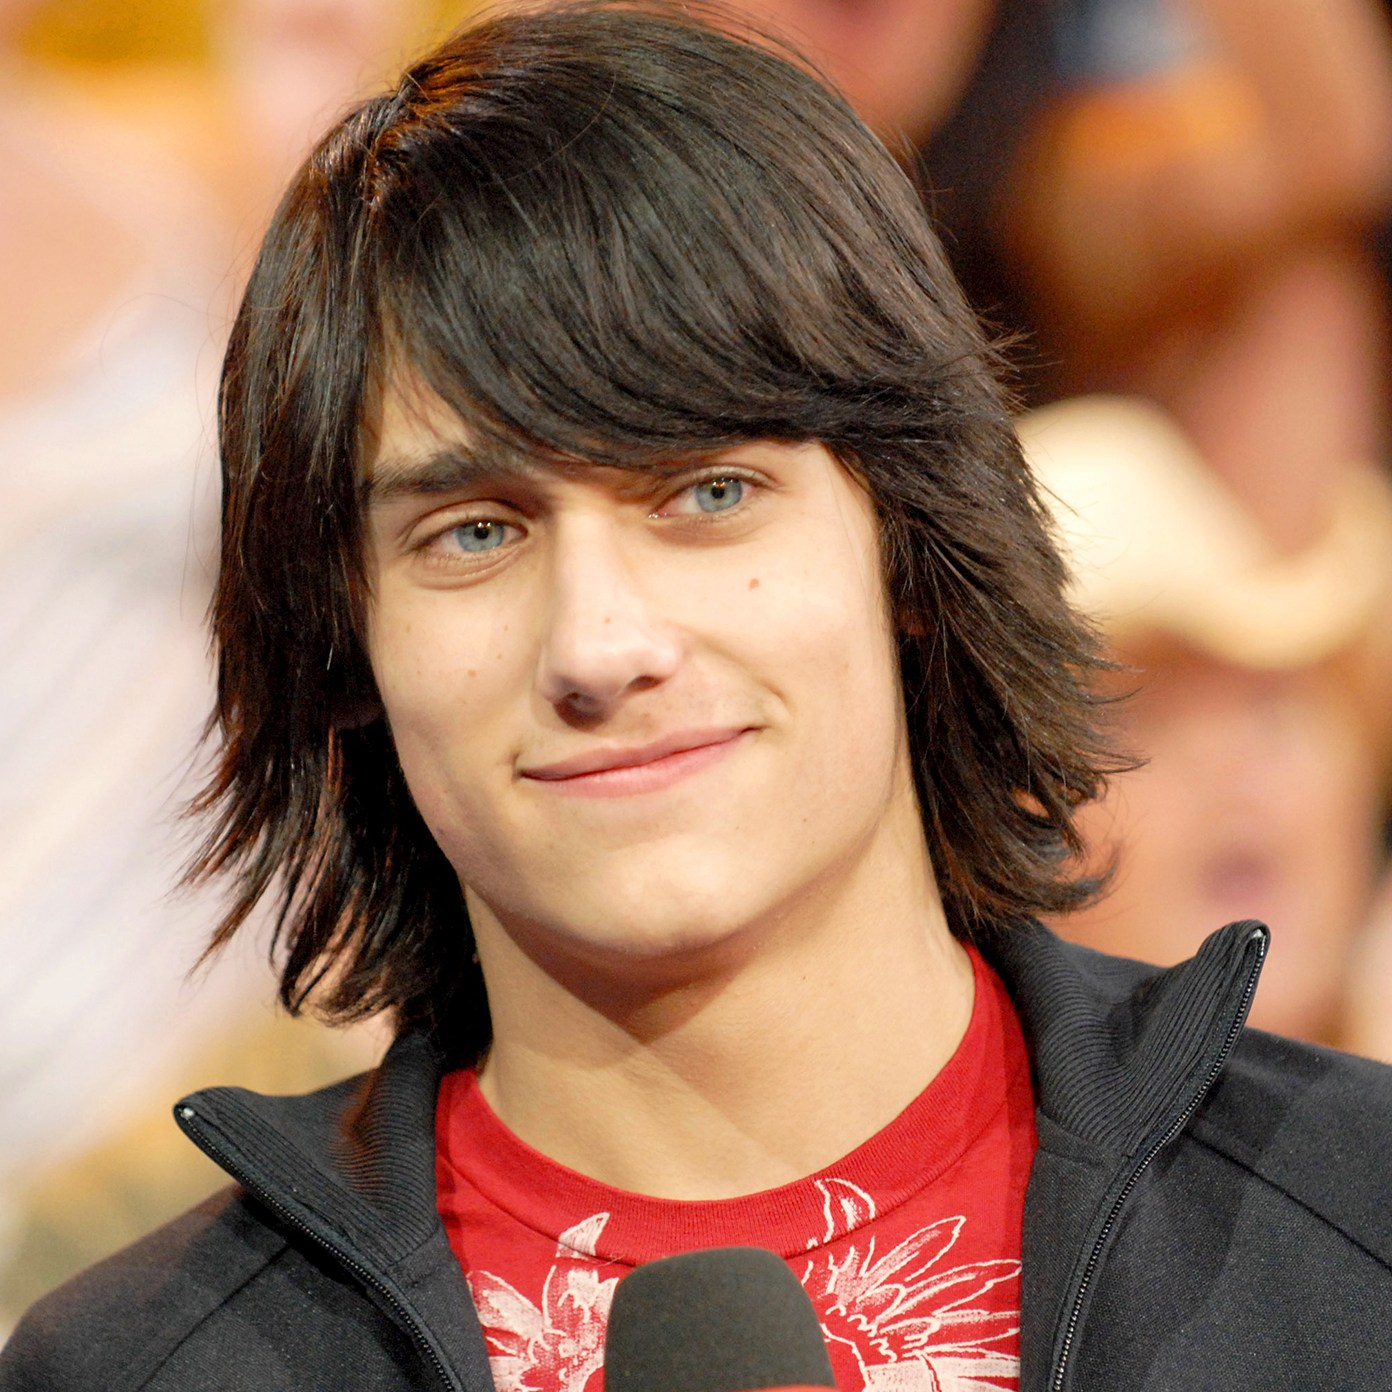 Teddy Geiger visits TRL at MTV Studios in New York City.